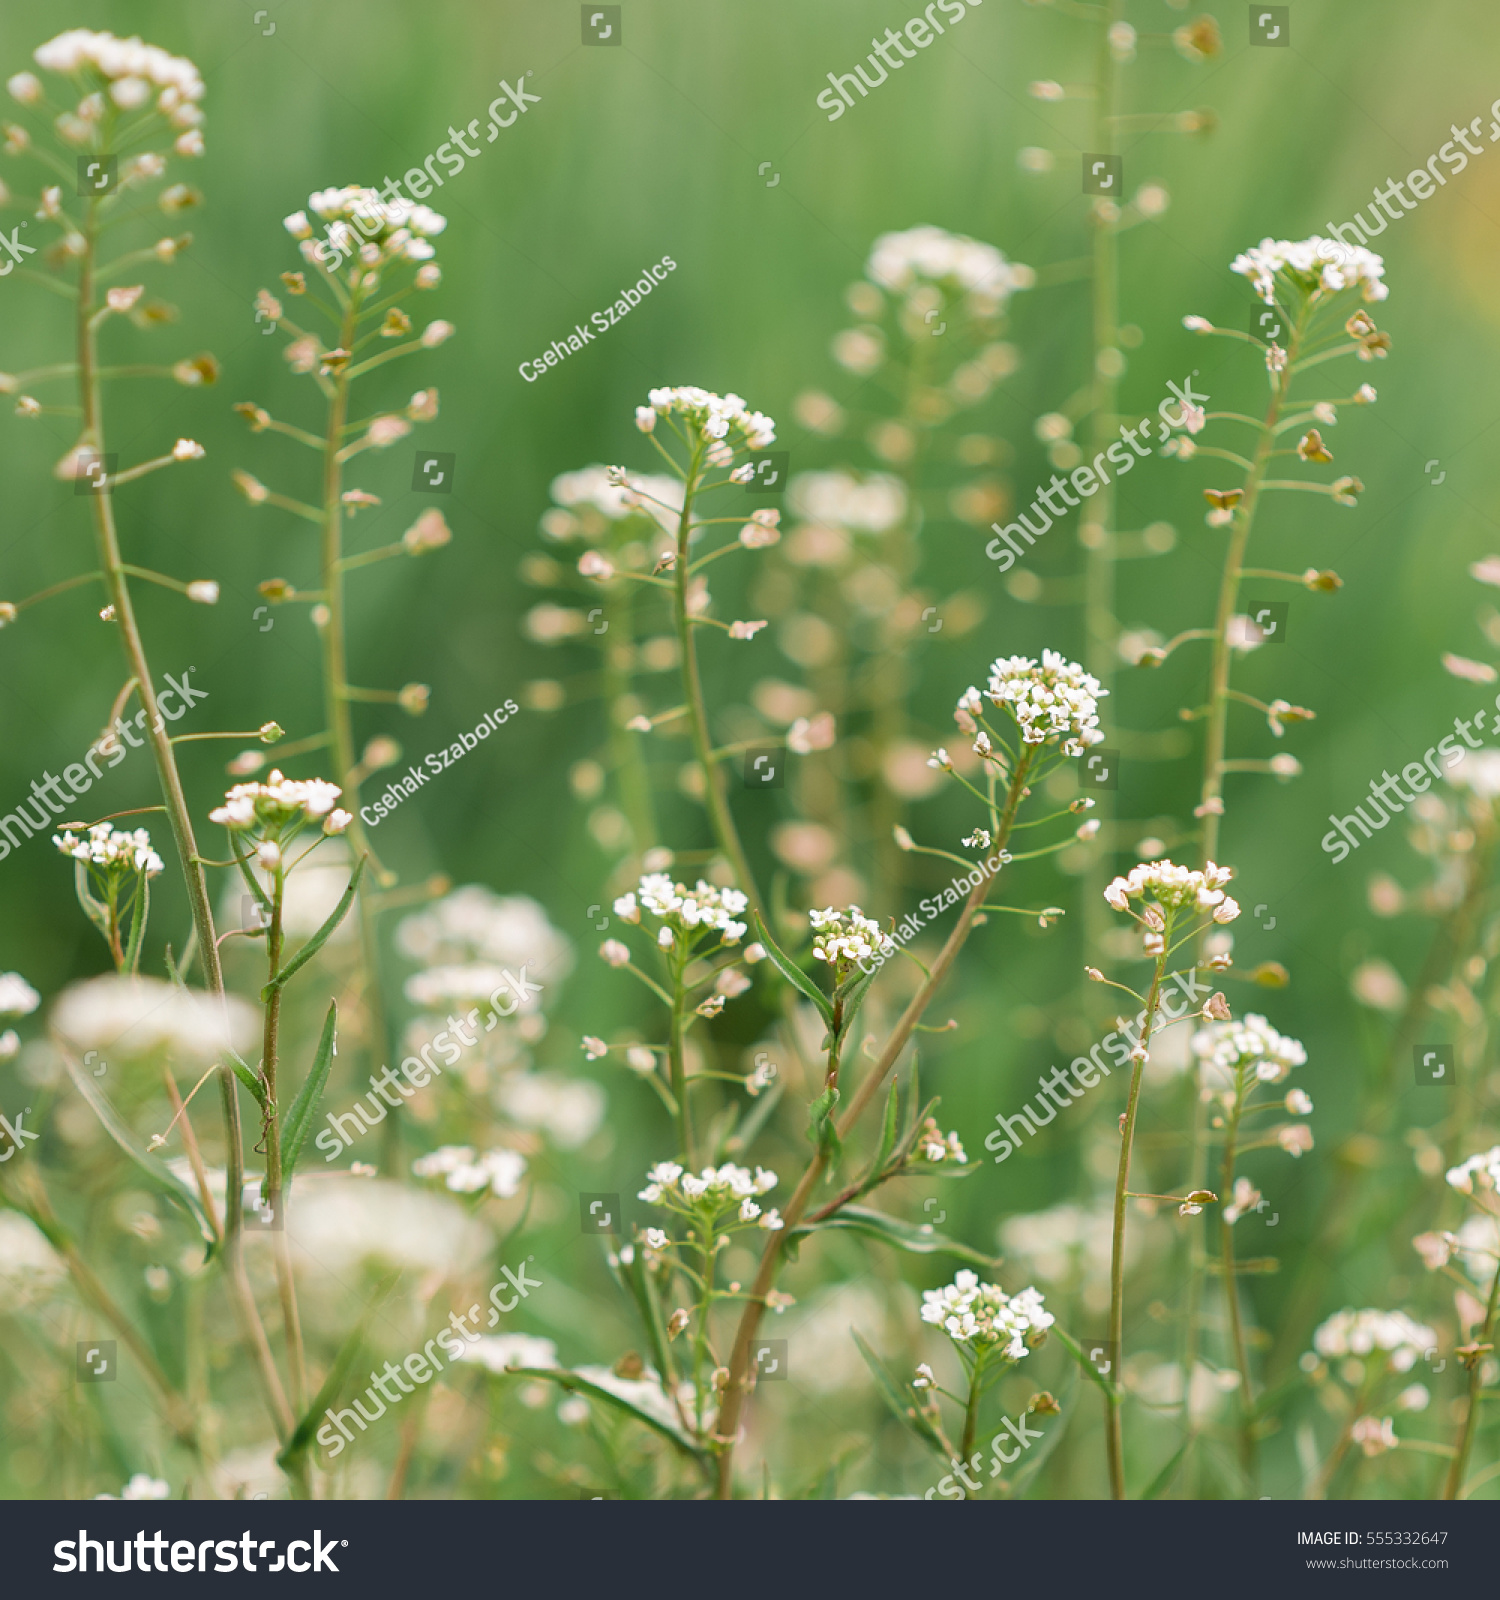 White Shepherds Purse Flowers In Spring Ez Canvas